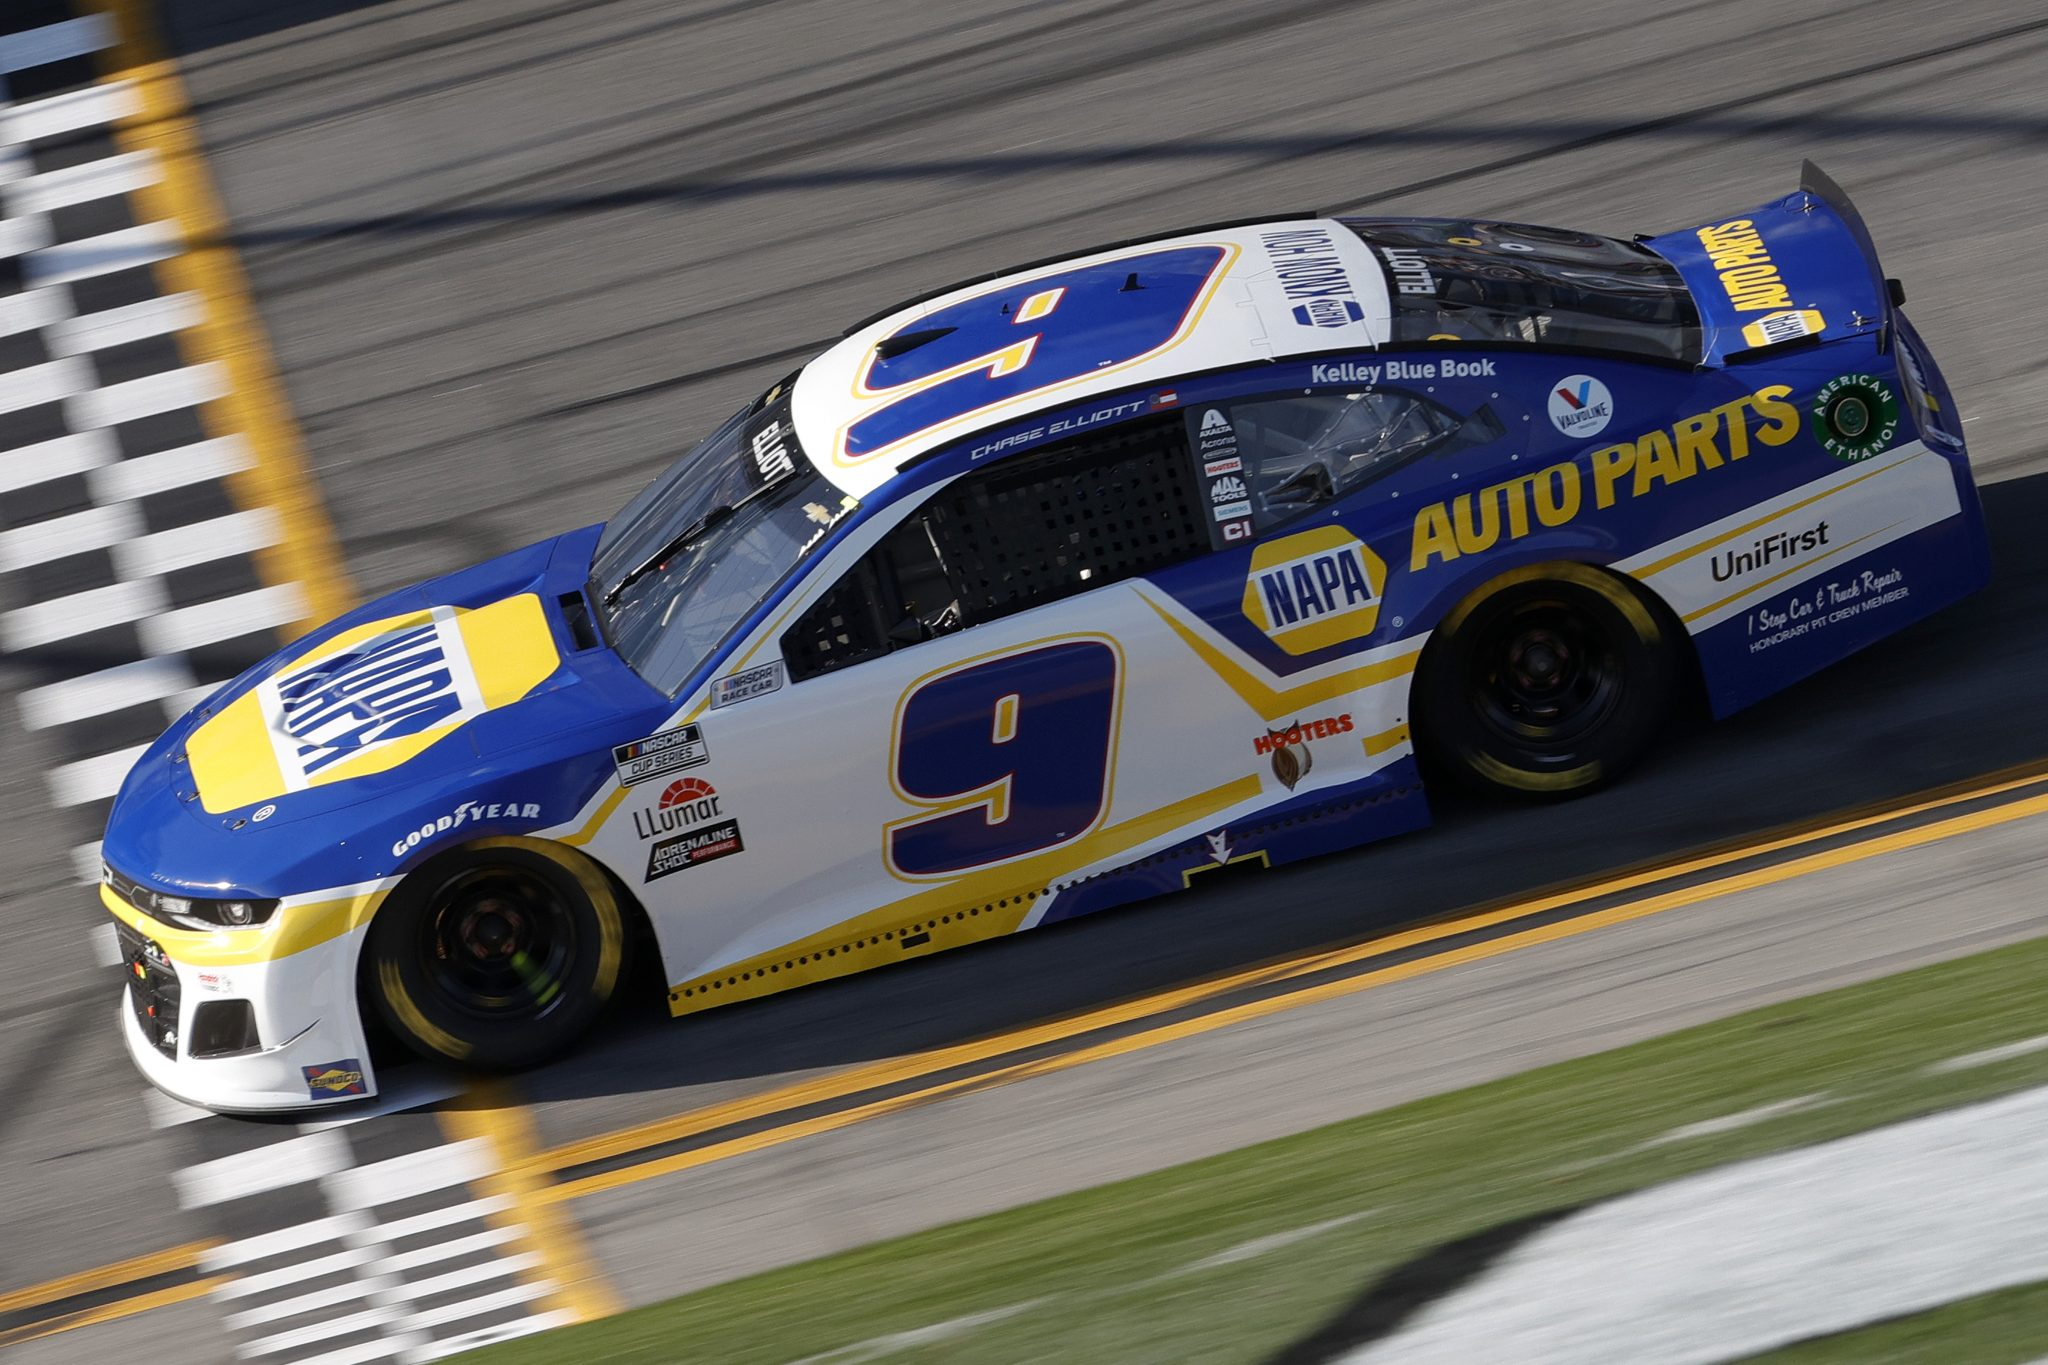 DAYTONA BEACH, FLORIDA - FEBRUARY 21: Chase Elliott, driver of the #9 NAPA Auto Parts Chevrolet, drives during the NASCAR Cup Series O'Reilly Auto Parts 253 at Daytona International Speedway on February 21, 2021 in Daytona Beach, Florida. (Photo by Chris Graythen/Getty Images) | Getty Images